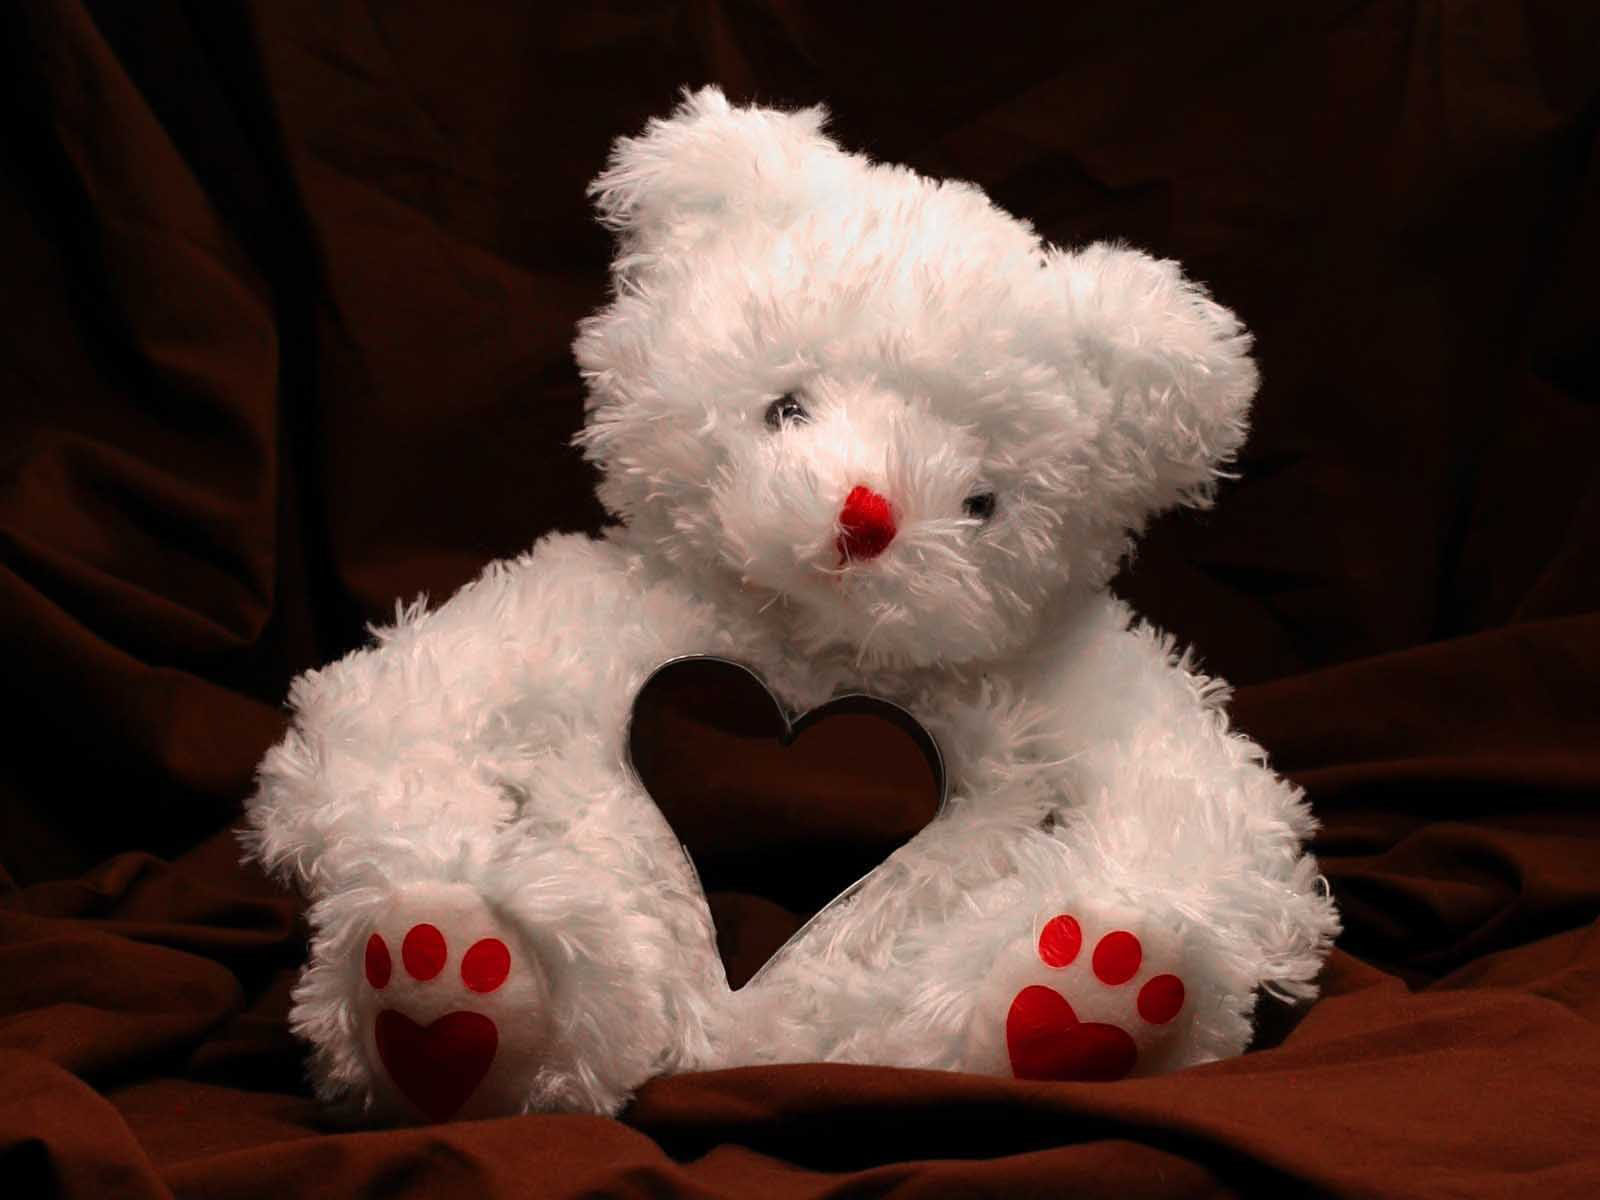 Love-White-Teddy-Bear-Wallpaper